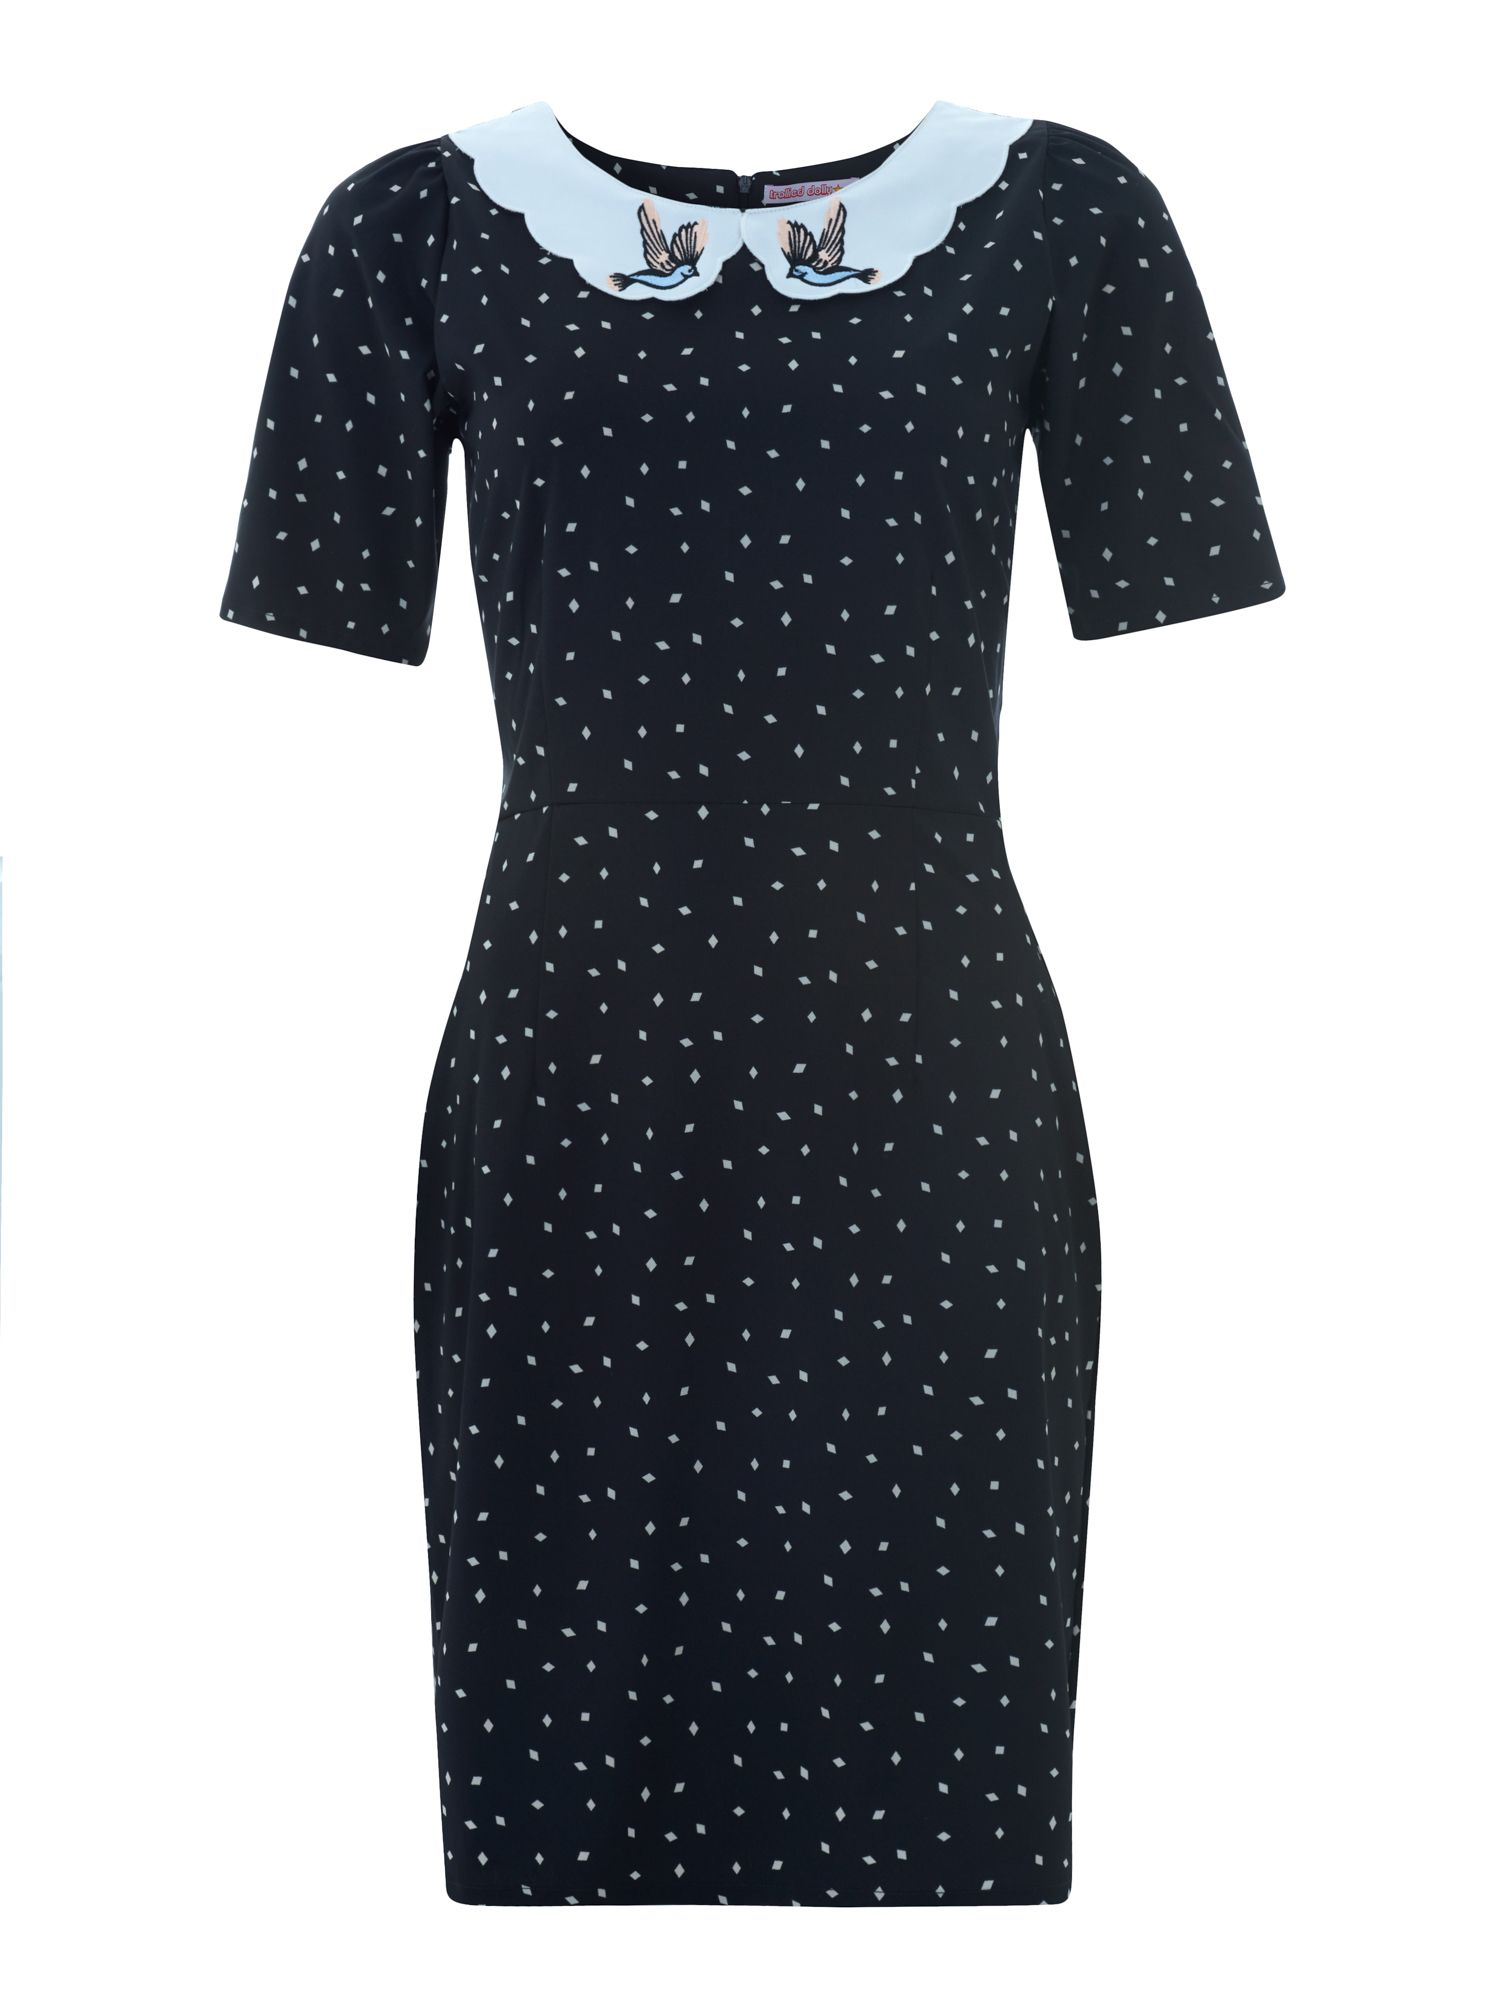 Trollied Dolly Shifty Sista With Collar Black £55.00 AT vintagedancer.com